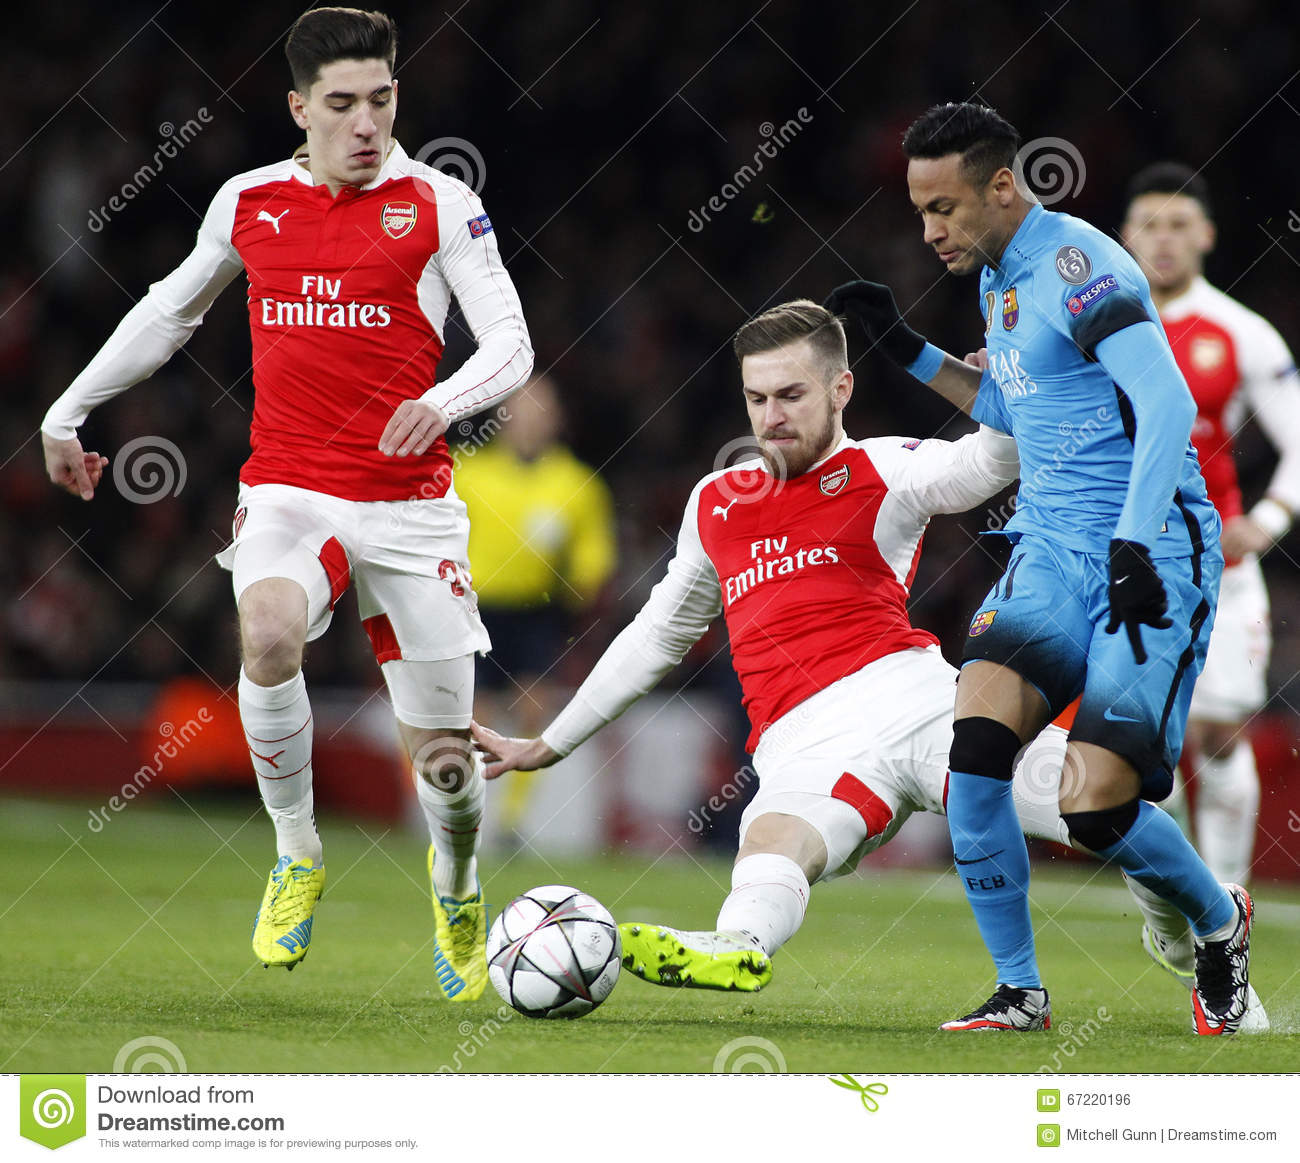 25ae499a039 LONDON, ENGLAND - FEBRUARY 23: Aaron Ramsey of Arsenal and Neymar of  Barcelona compete for the ball during the Champions League match between  Arsenal and ...